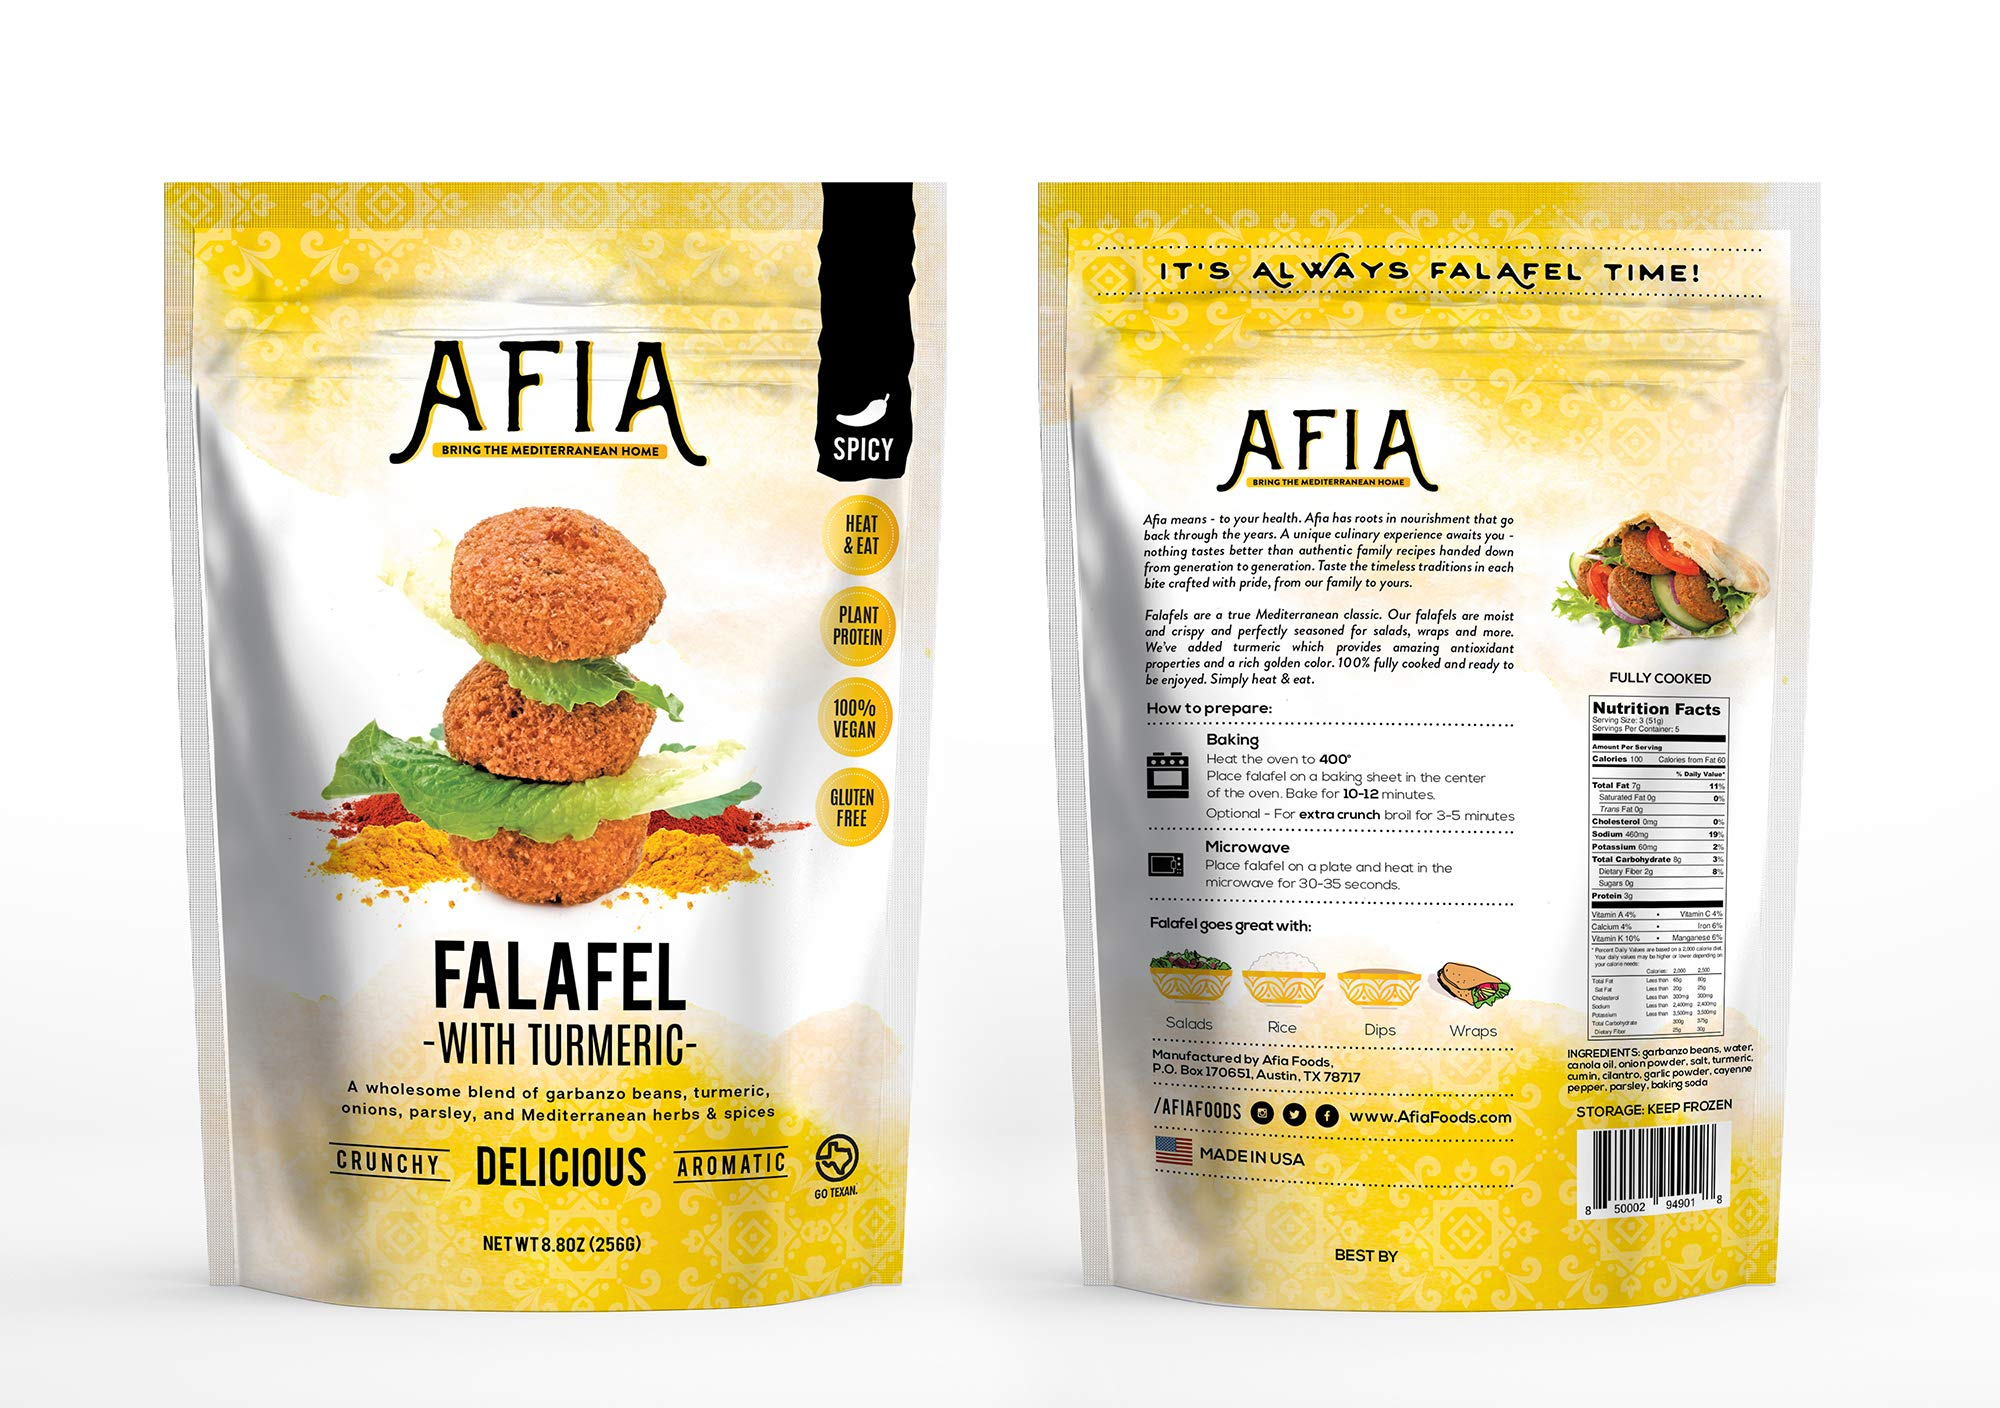 Vegan/Gluten Free Frozen Spicy Turmeric Falafel Bundle - Pack of (10) bags - (approx 140 count) - Just Heat & Eat!